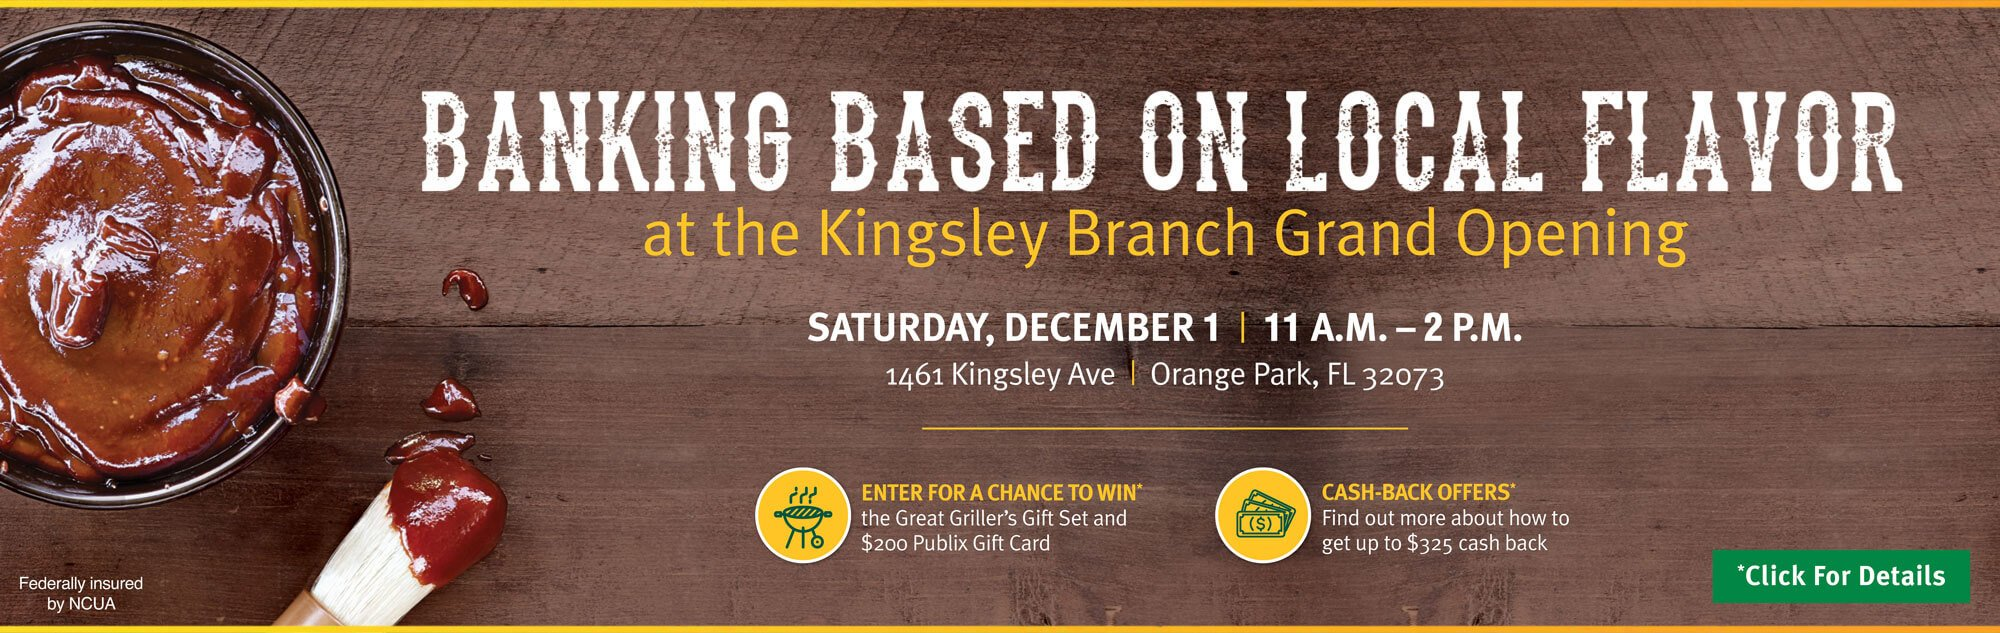 Banking based on local flavor at the Kingsley Branch Grand Opening. Saturday, December 1 from 11 a.m. to 2 p.m. Located at 1461 Kingsley Ave. Orange Park, Florida 32073. Enter for a chance to win* the Great Griller's Gift Set and a $200 Publix Gift Card. Cash-back offers* Find out more about how to get up to $325 cash back. Click for details.